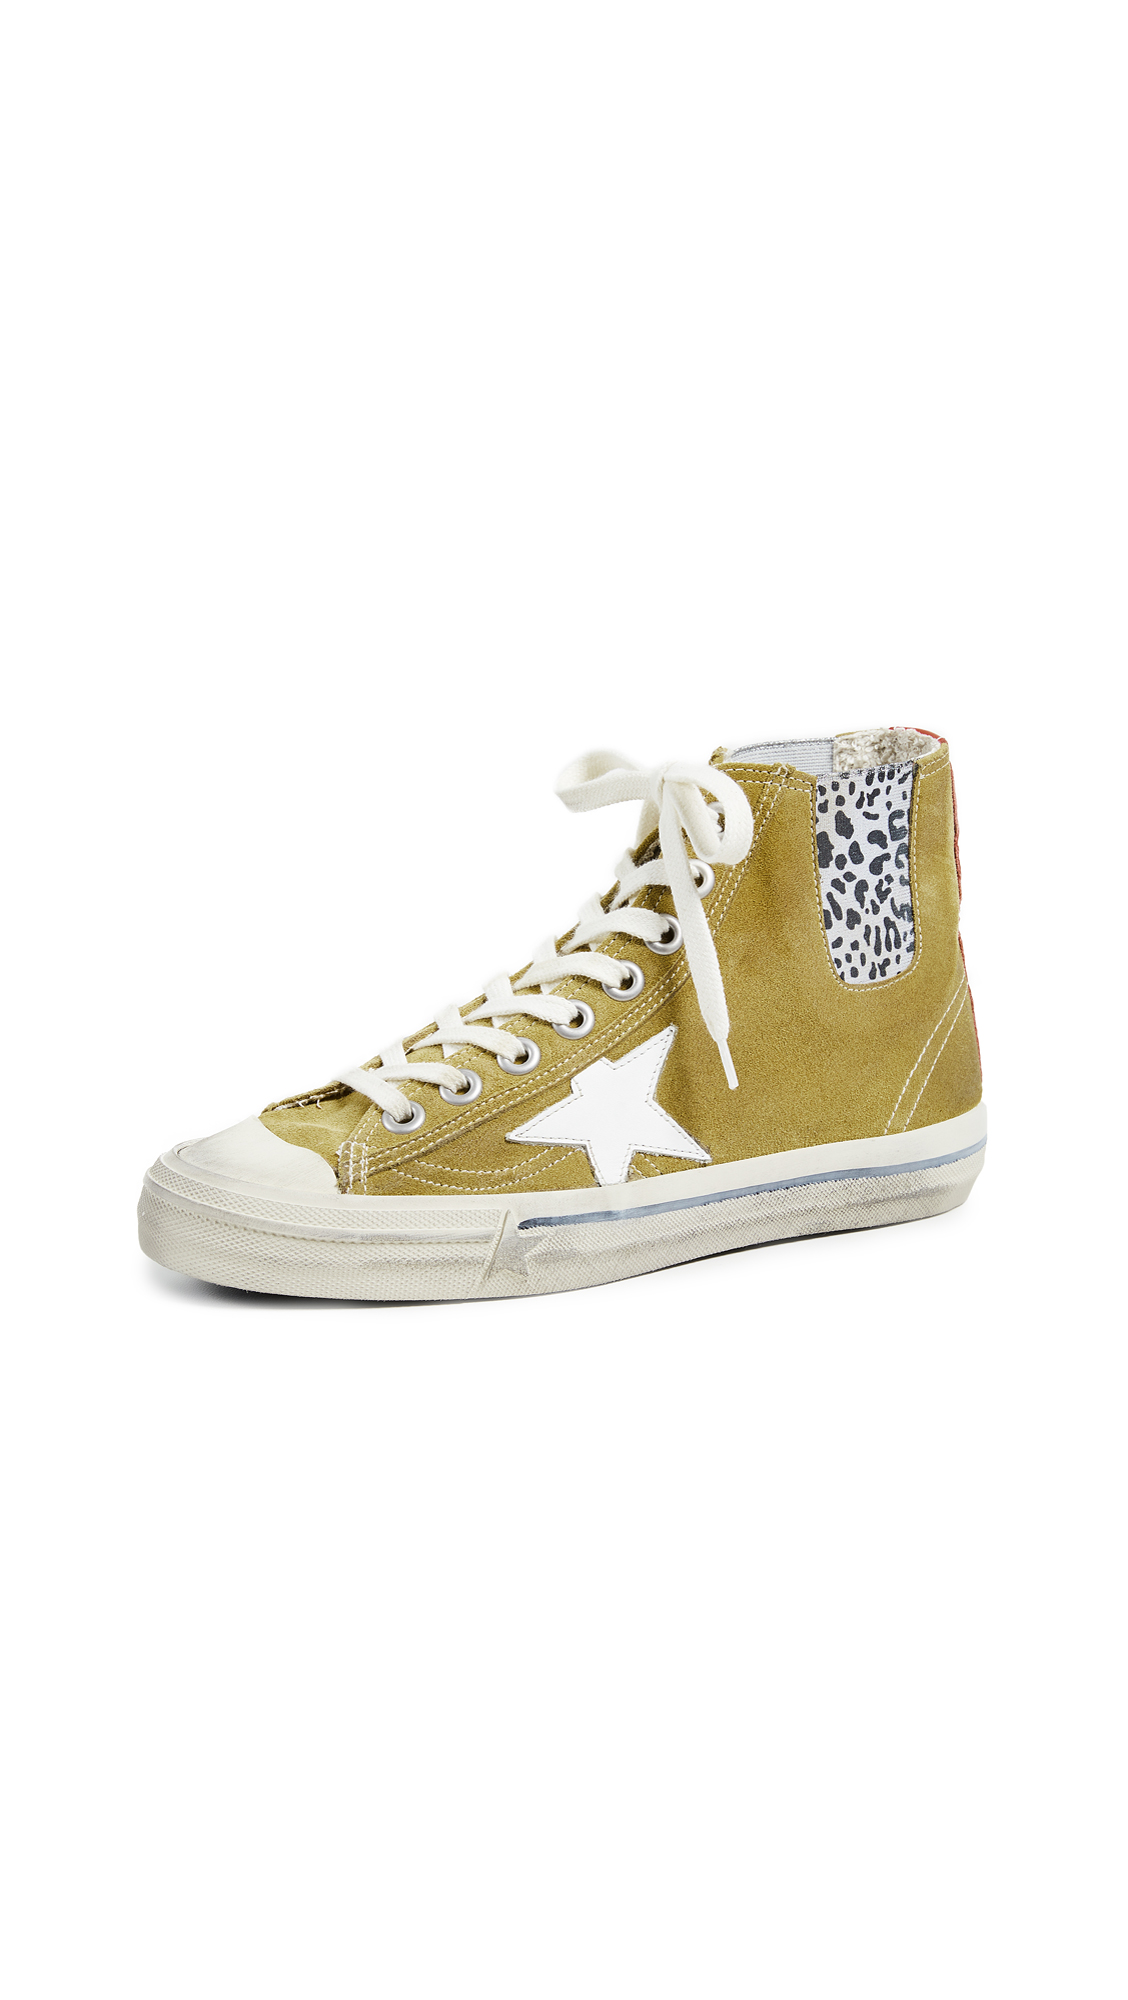 Golden Goose V Star 1 Sneakers - Mustard